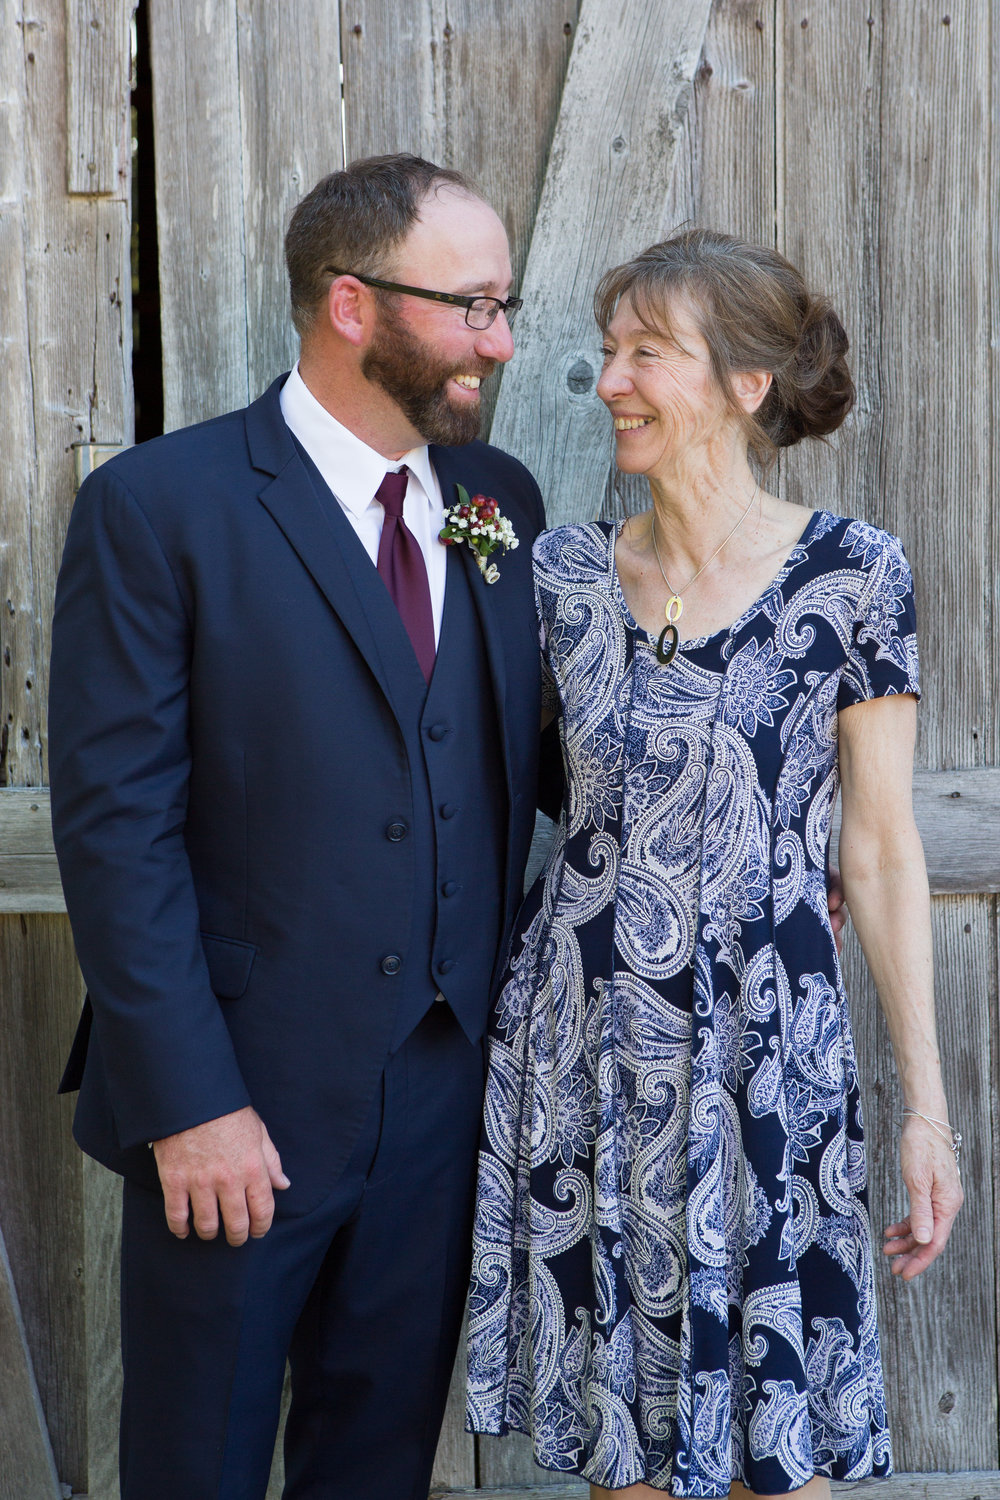 dottie&ryanBLOG (53 of 120).jpg